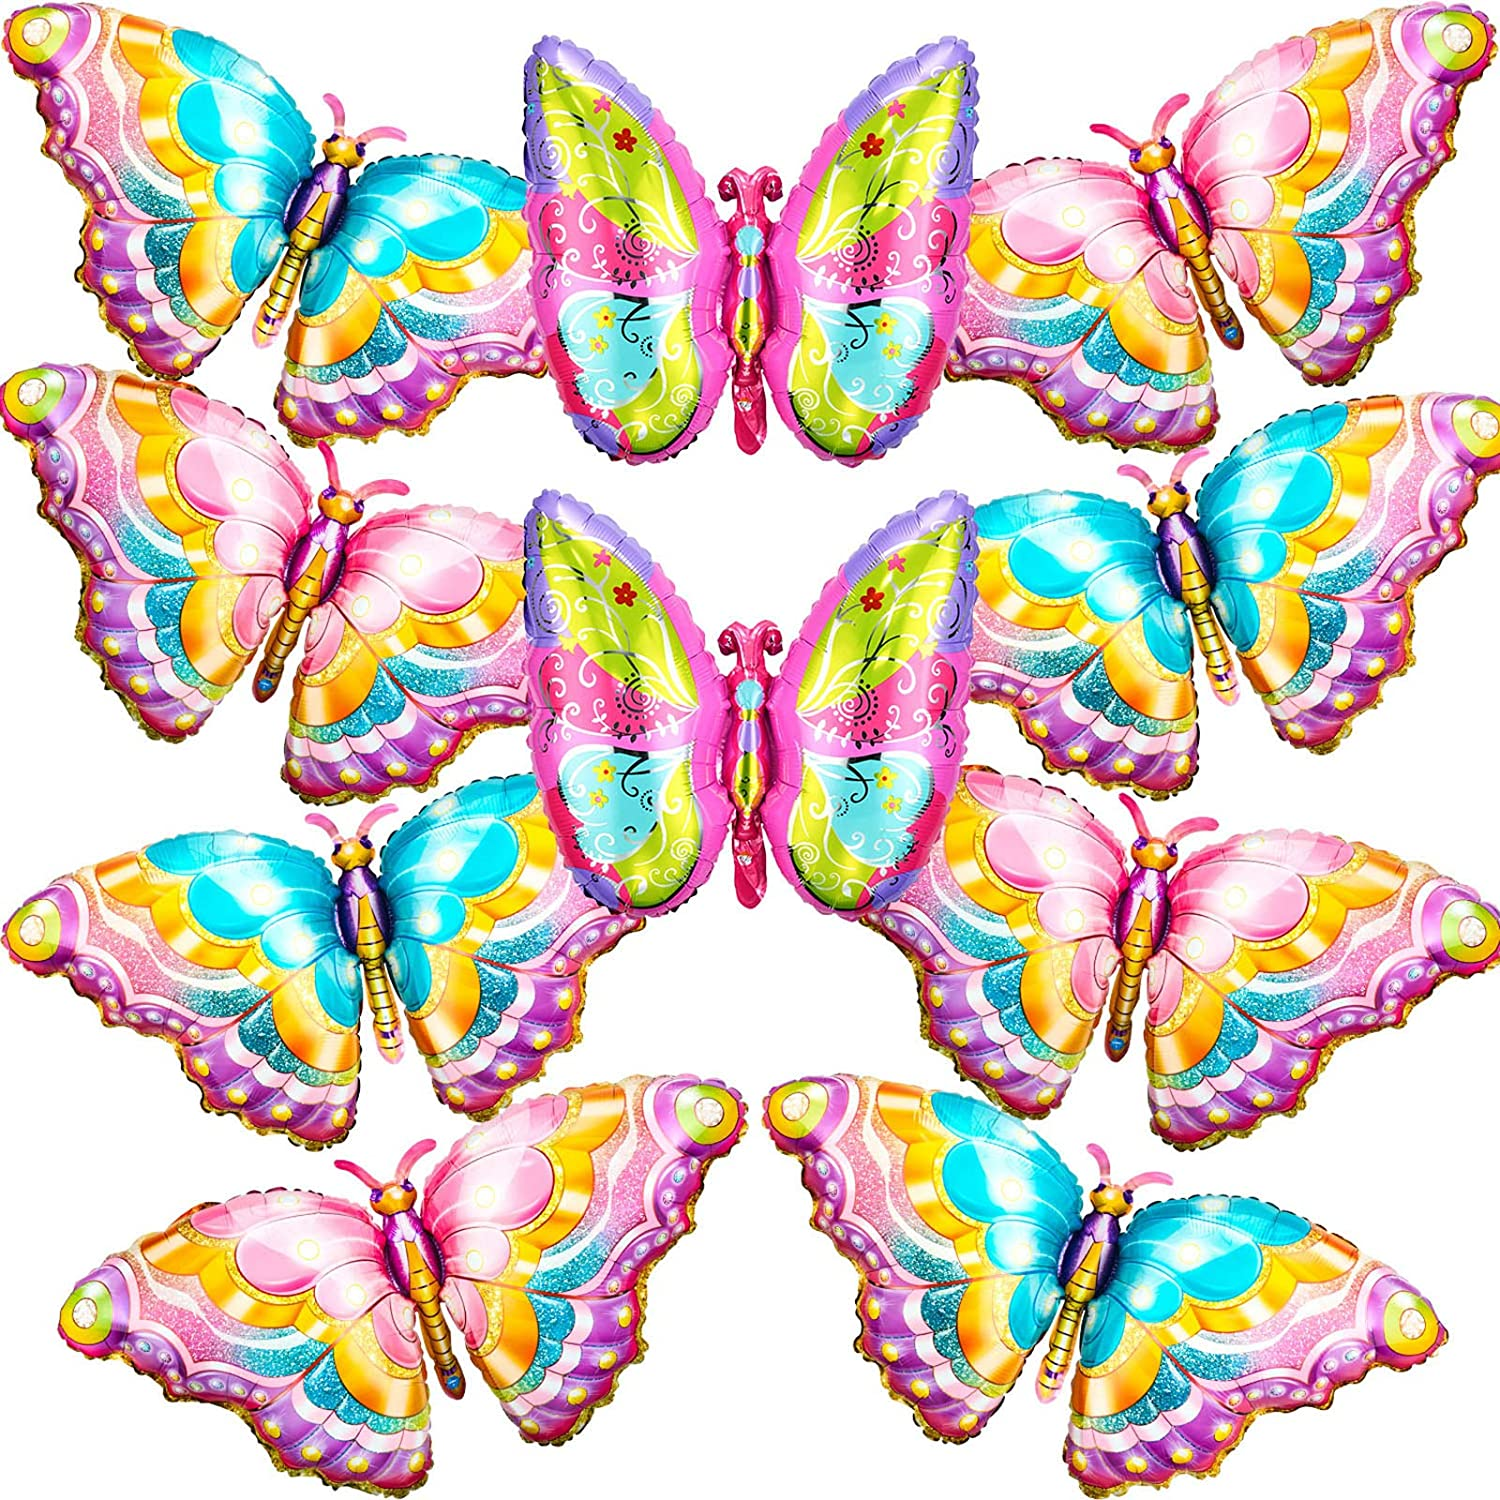 10 Pieces Butterfly Foil Balloons Butterfly Fairy Balloon Butterfly Birthday Helium Mylar Balloons Jumbo Balloons for Butterfly Theme Party Supplies Gender Reveal Wedding Birthday Decor 3 Colors